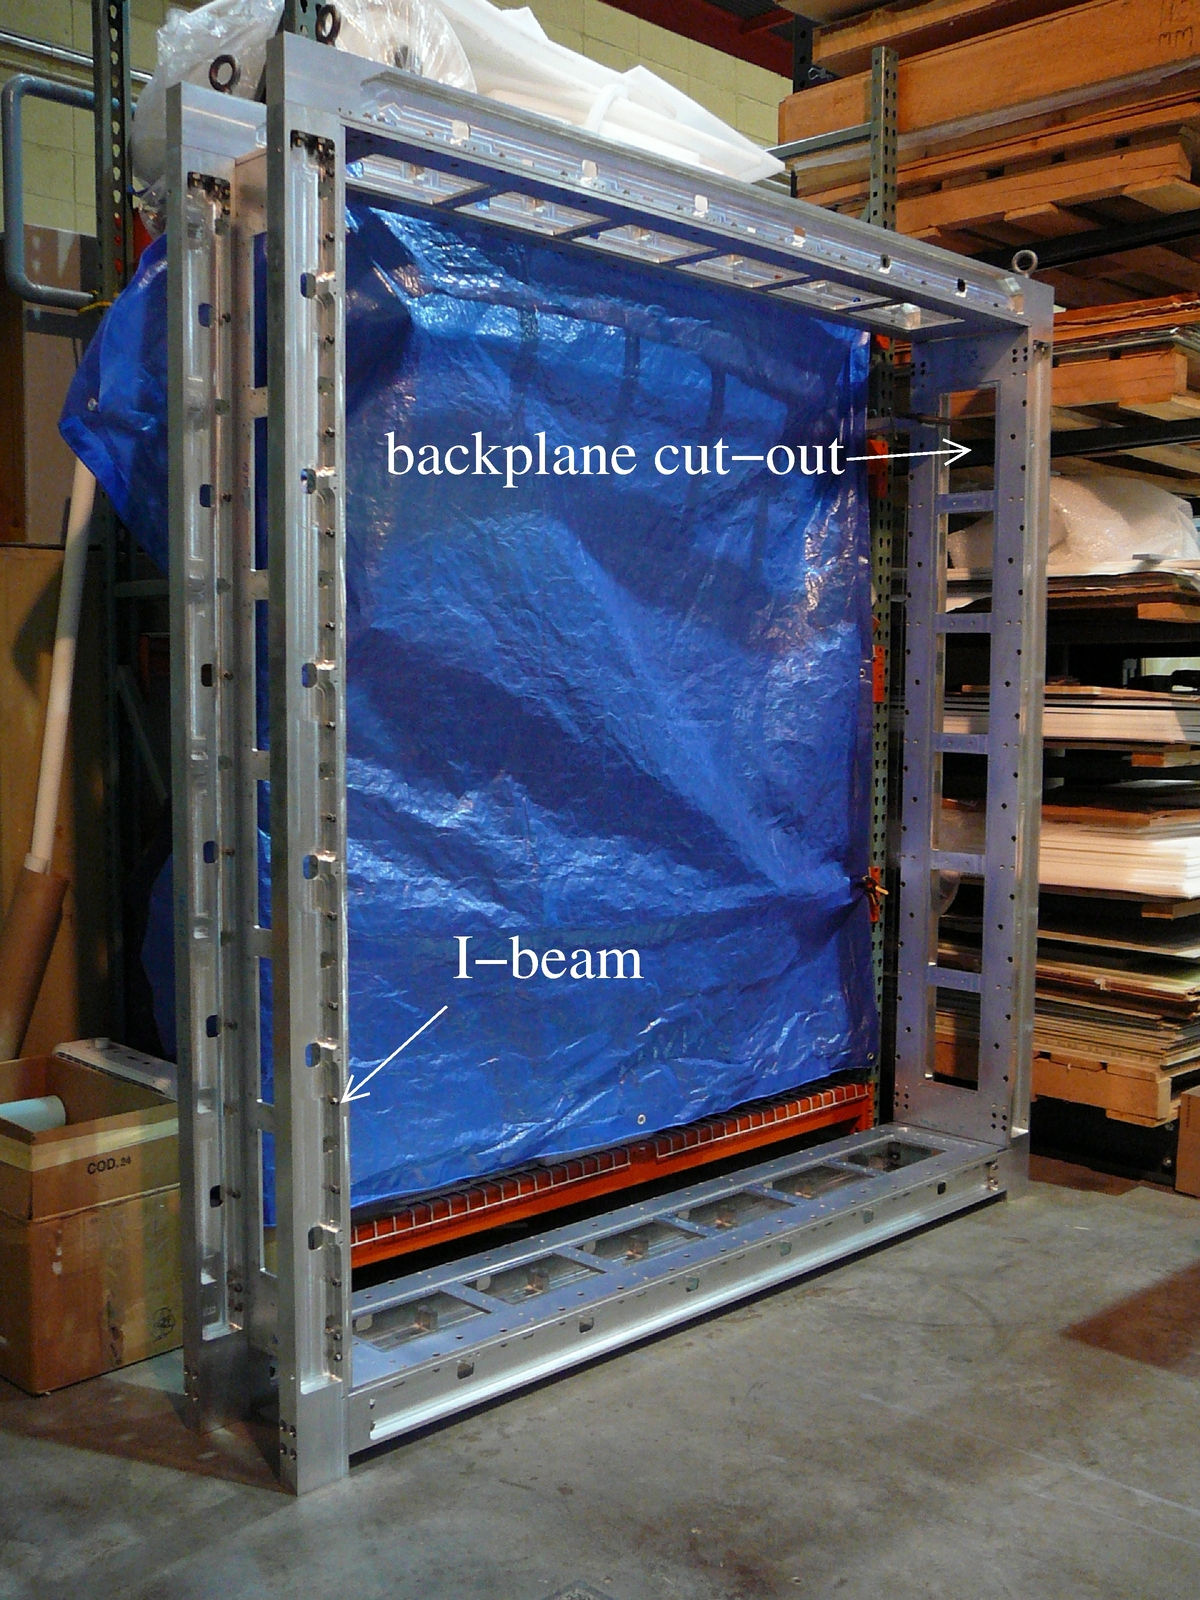 Photograph of the dark box structure. One of the 24 cutouts for backplanes and one of the 8 I beams are labelled.